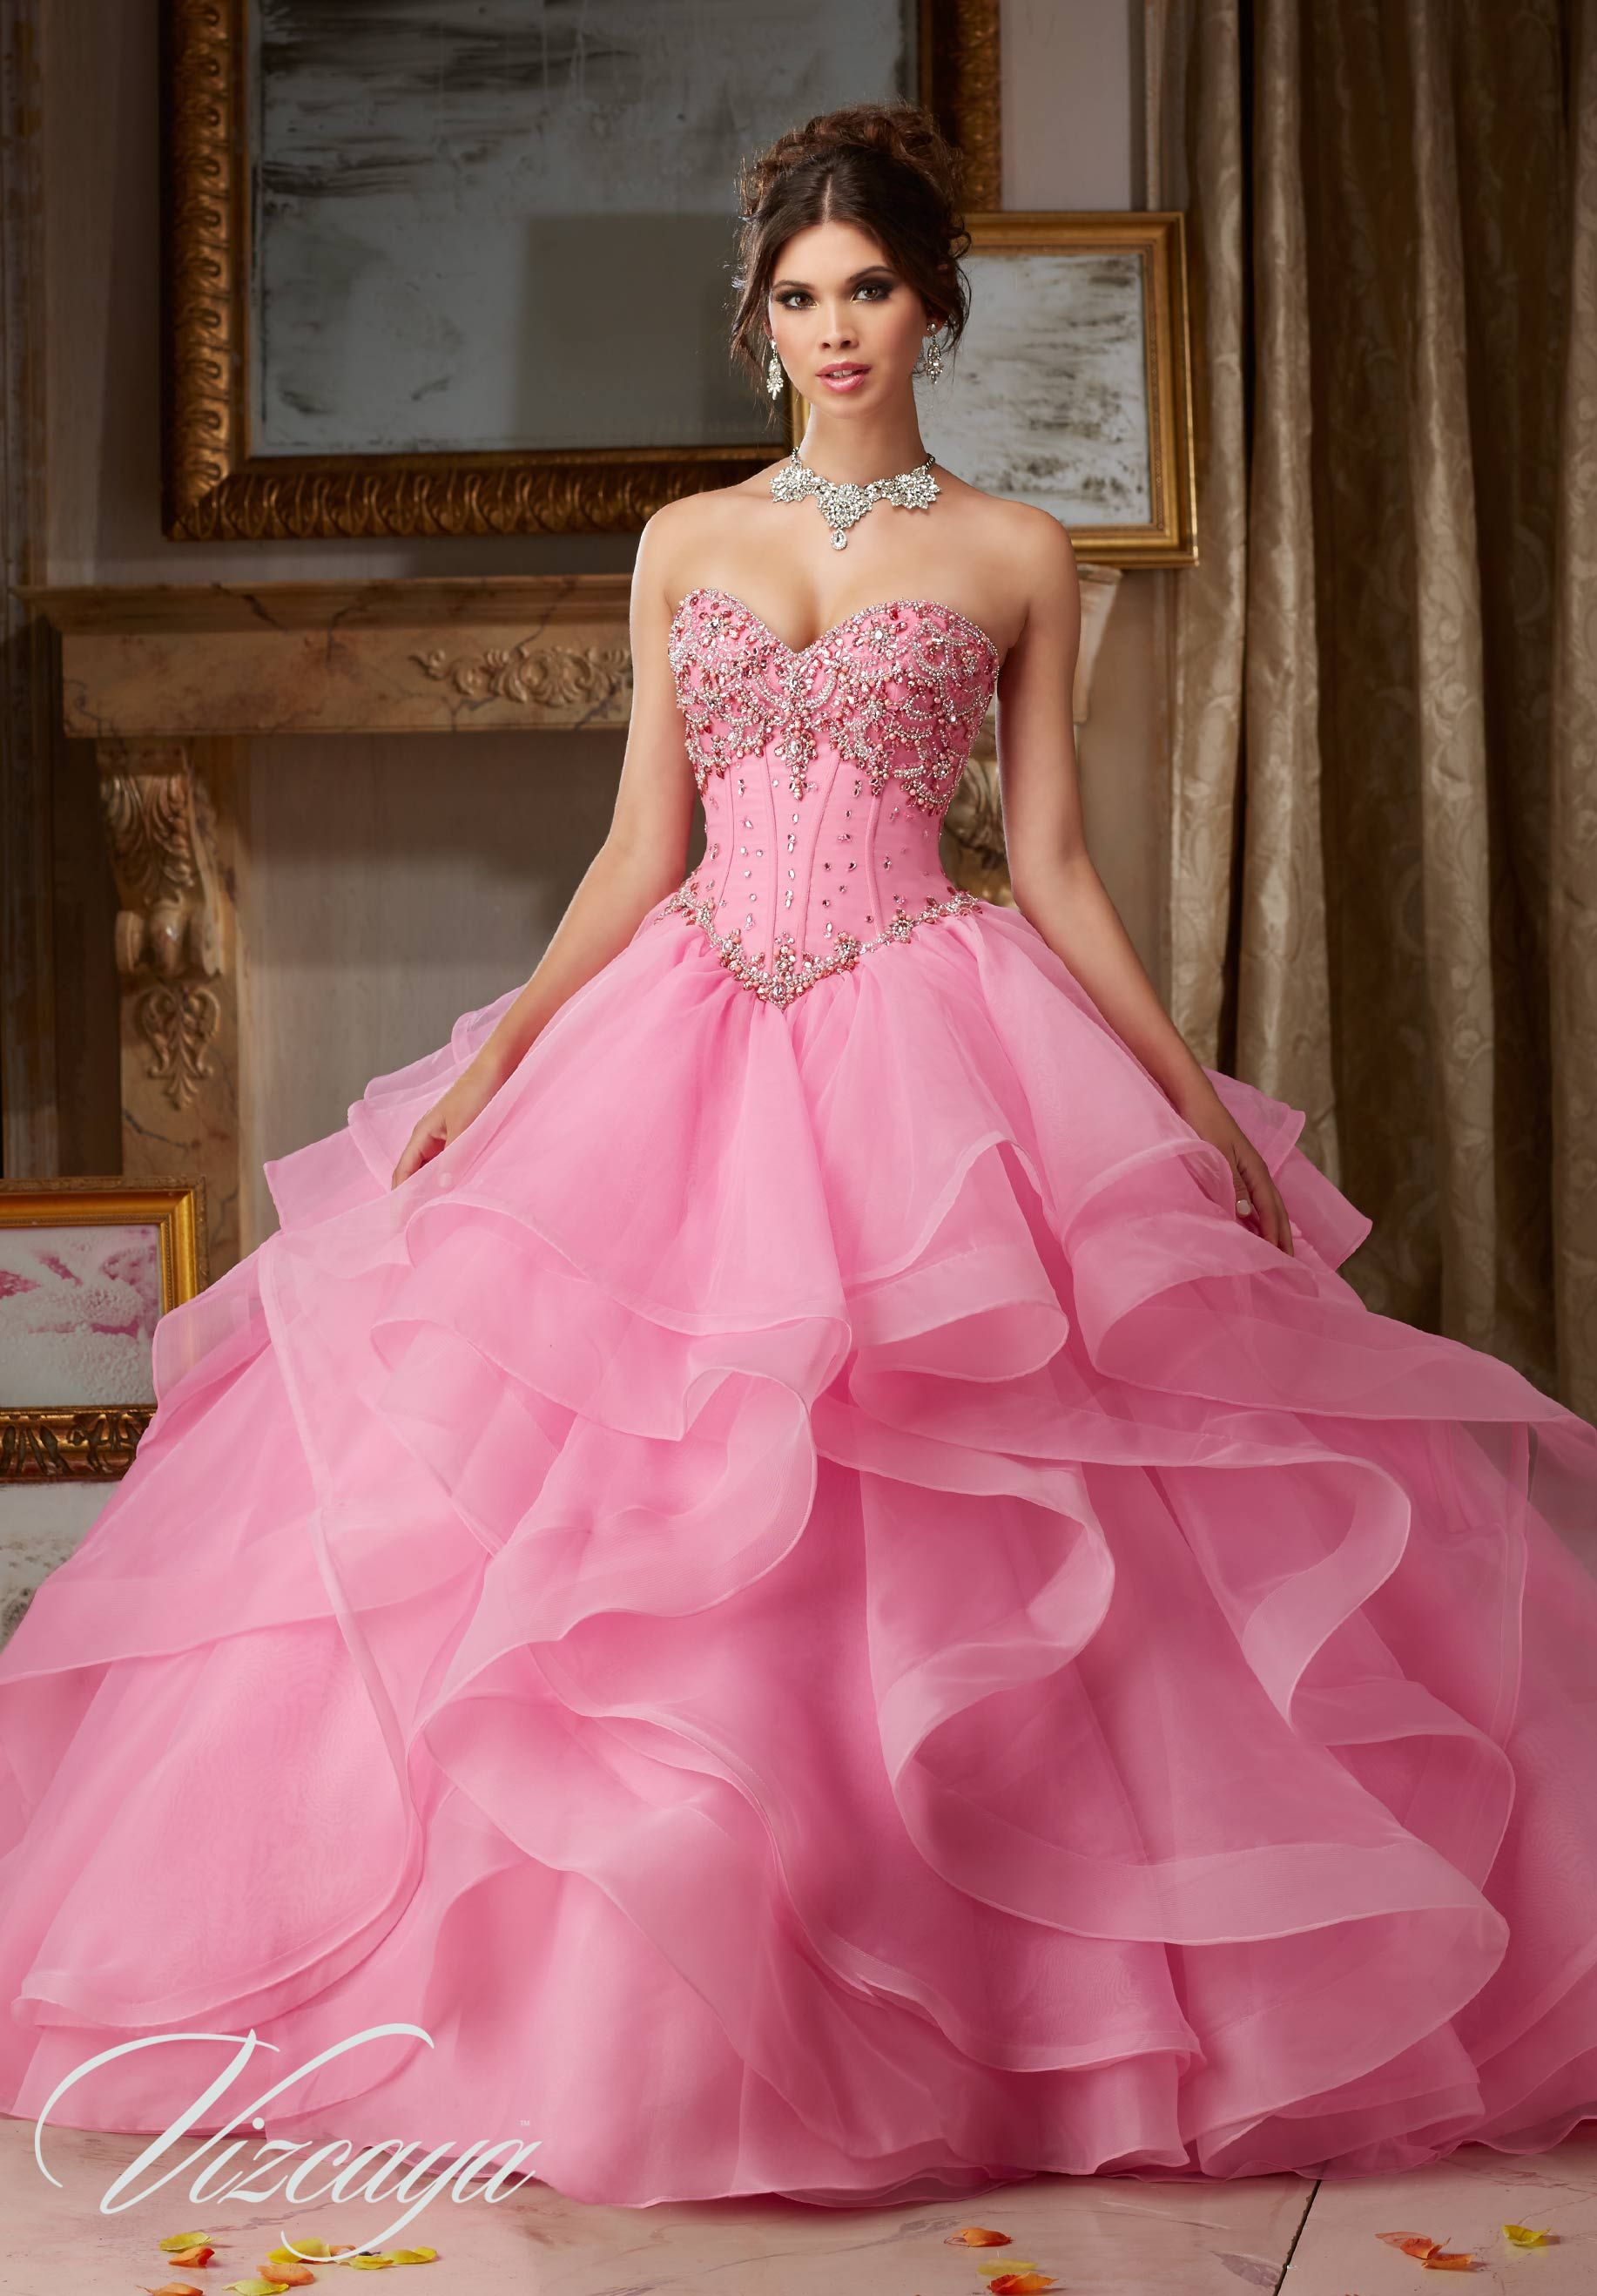 Organza Quinceañera Dress featuring Tiered Skirt with Horsehair ...